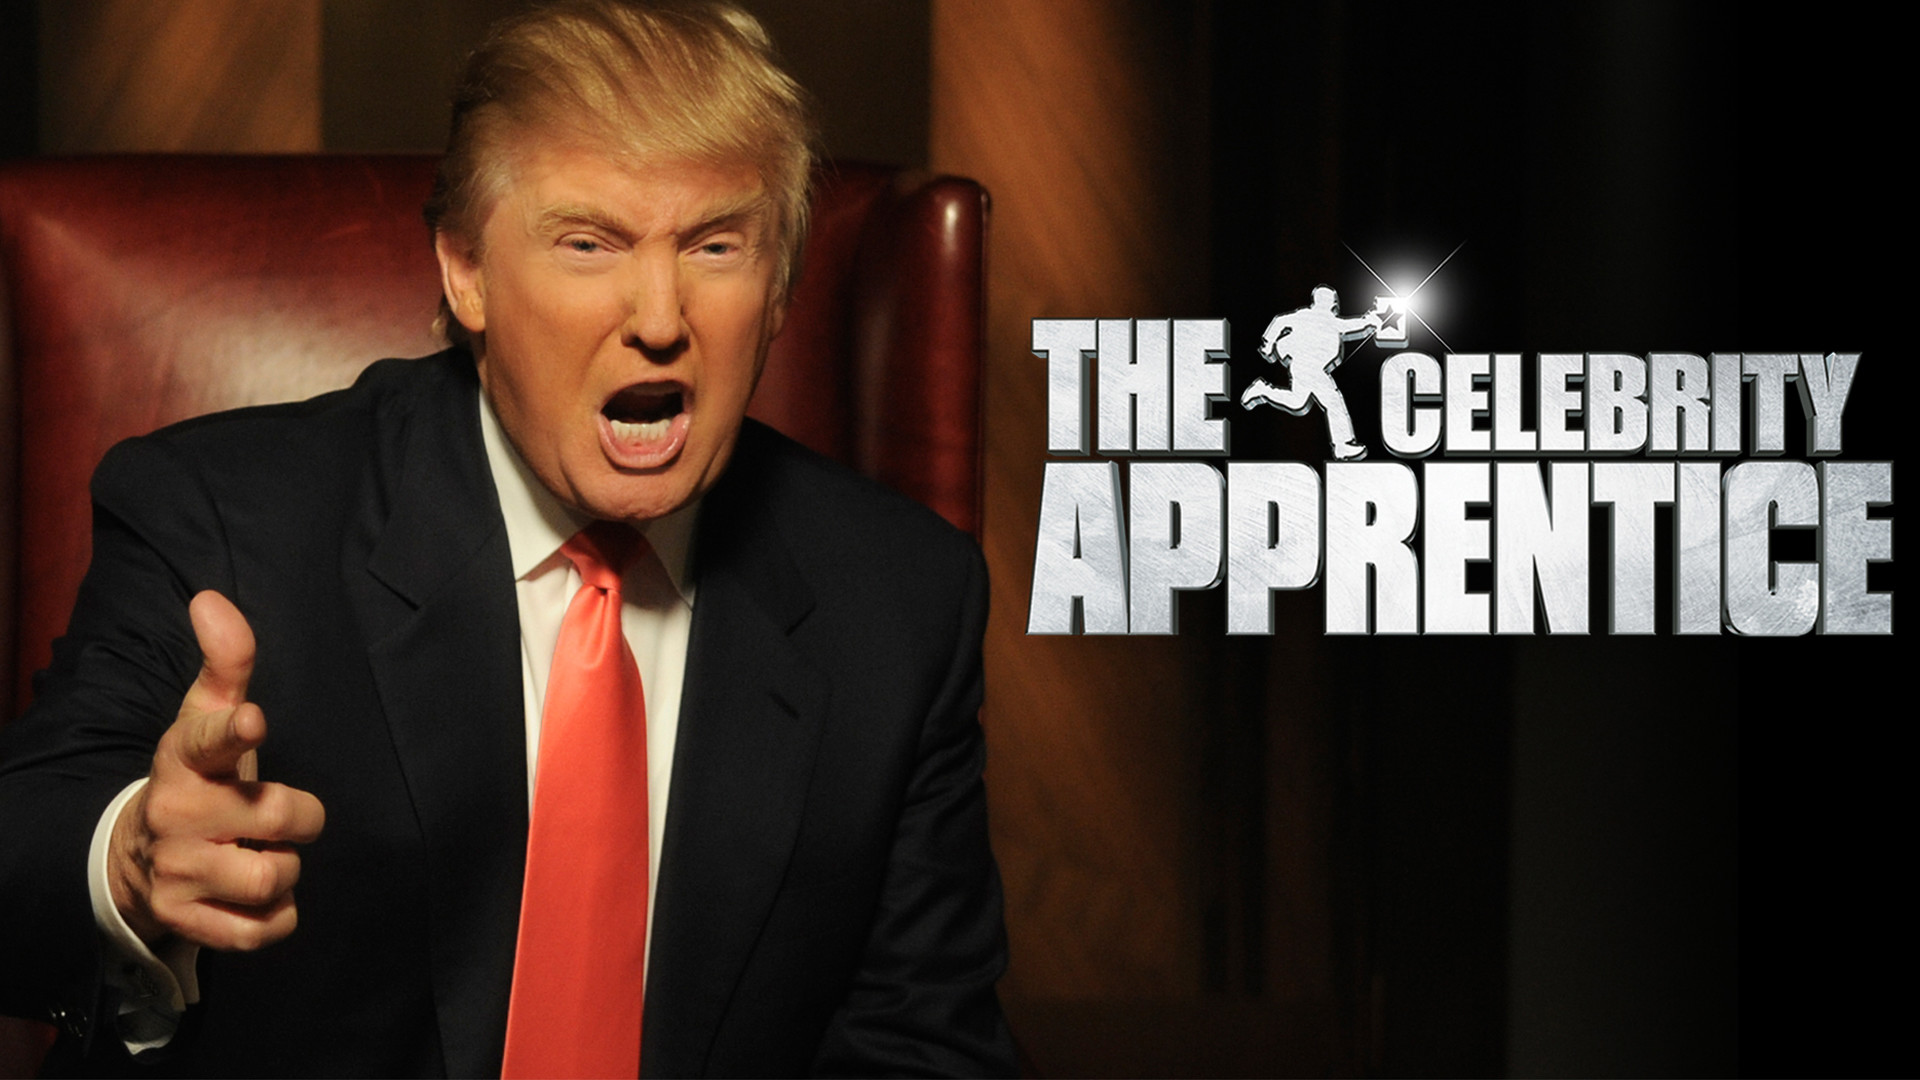 1920x1080 Donald Trump, The Celebrity Apprentice, The New Celebrity Apprentice, NBC